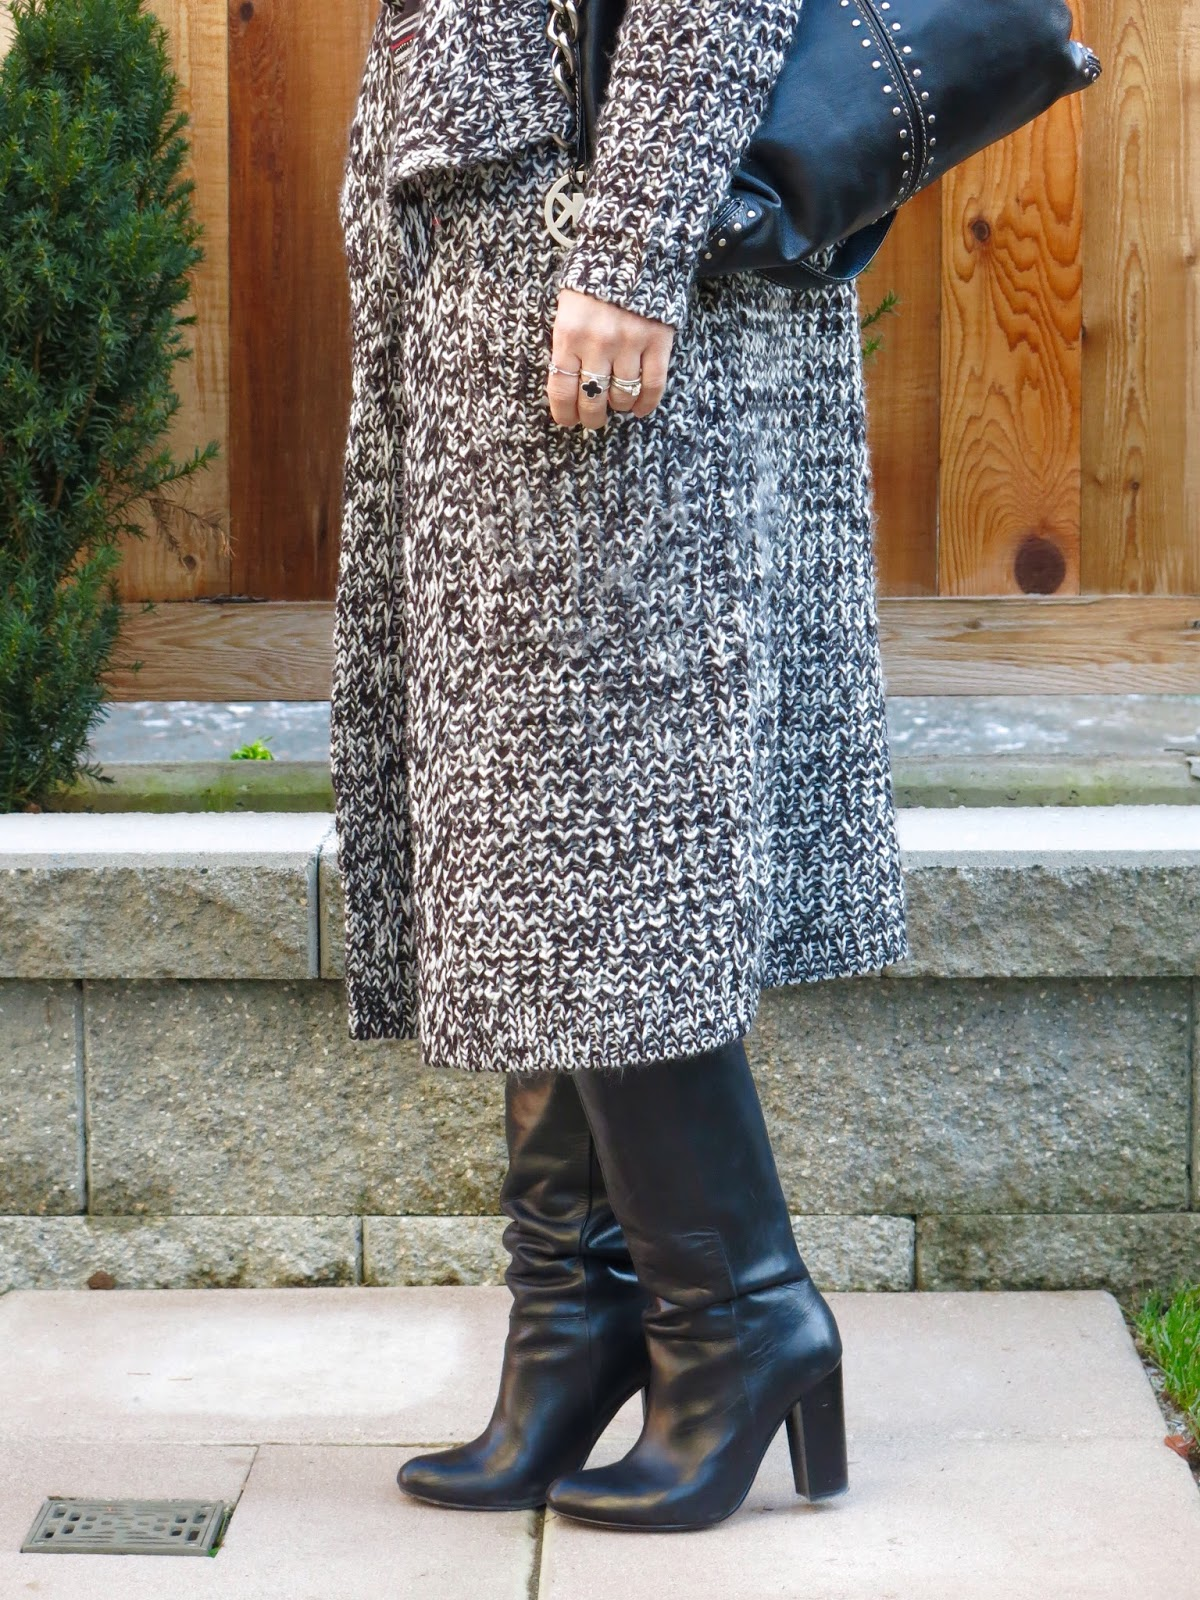 knee boots, long cardigan, and Michael Kors studded bag